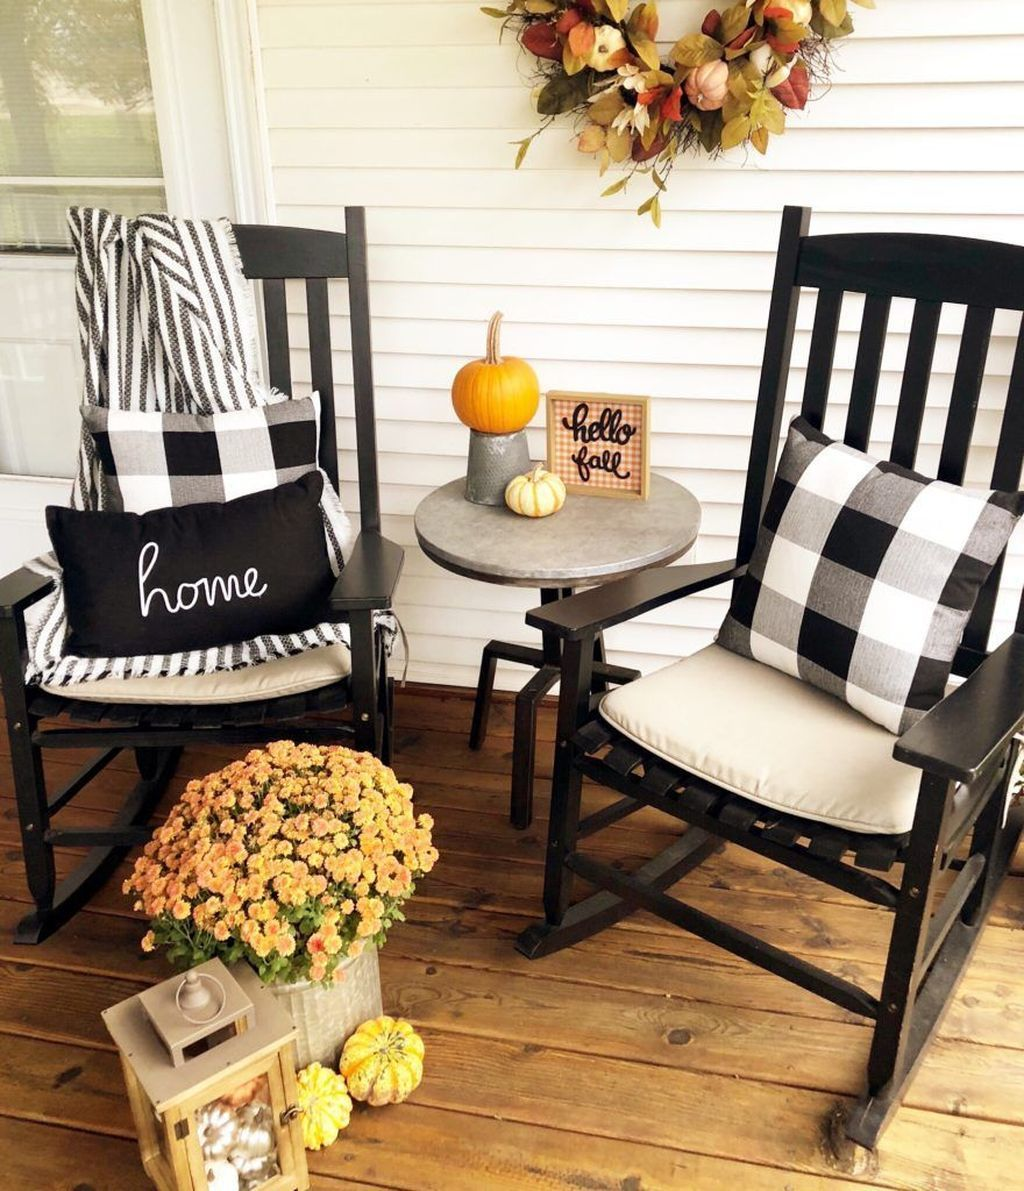 Inspiring Farmhouse Front Porch Decor Ideas 23